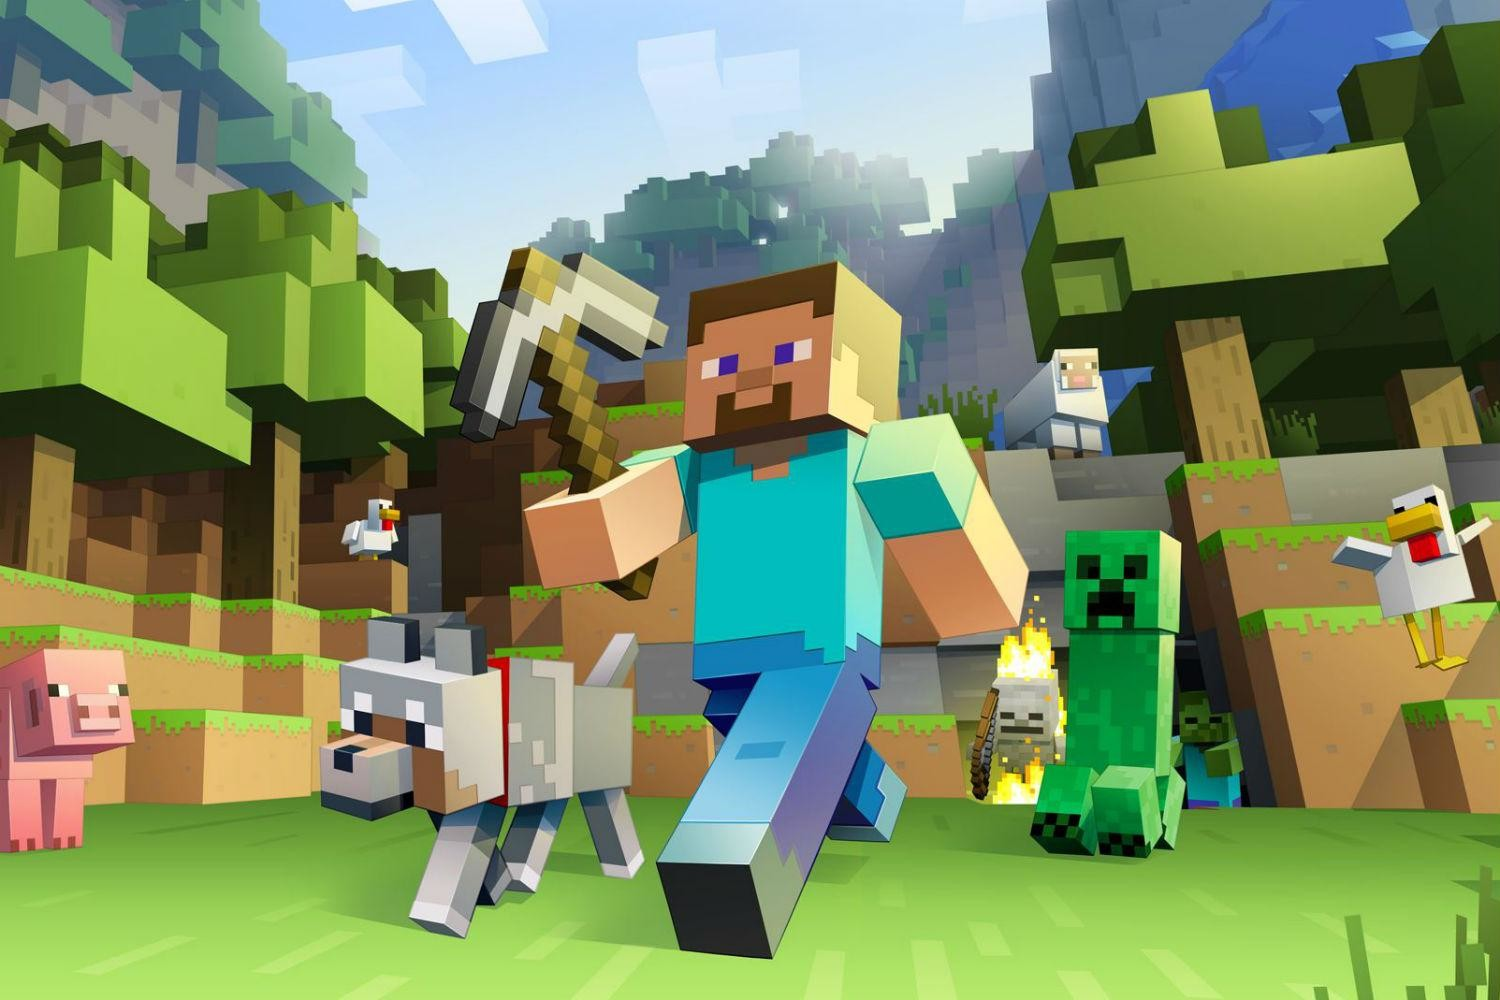 Minecraft Update Removes the Name of Its Creator, Notch   Digital Trends